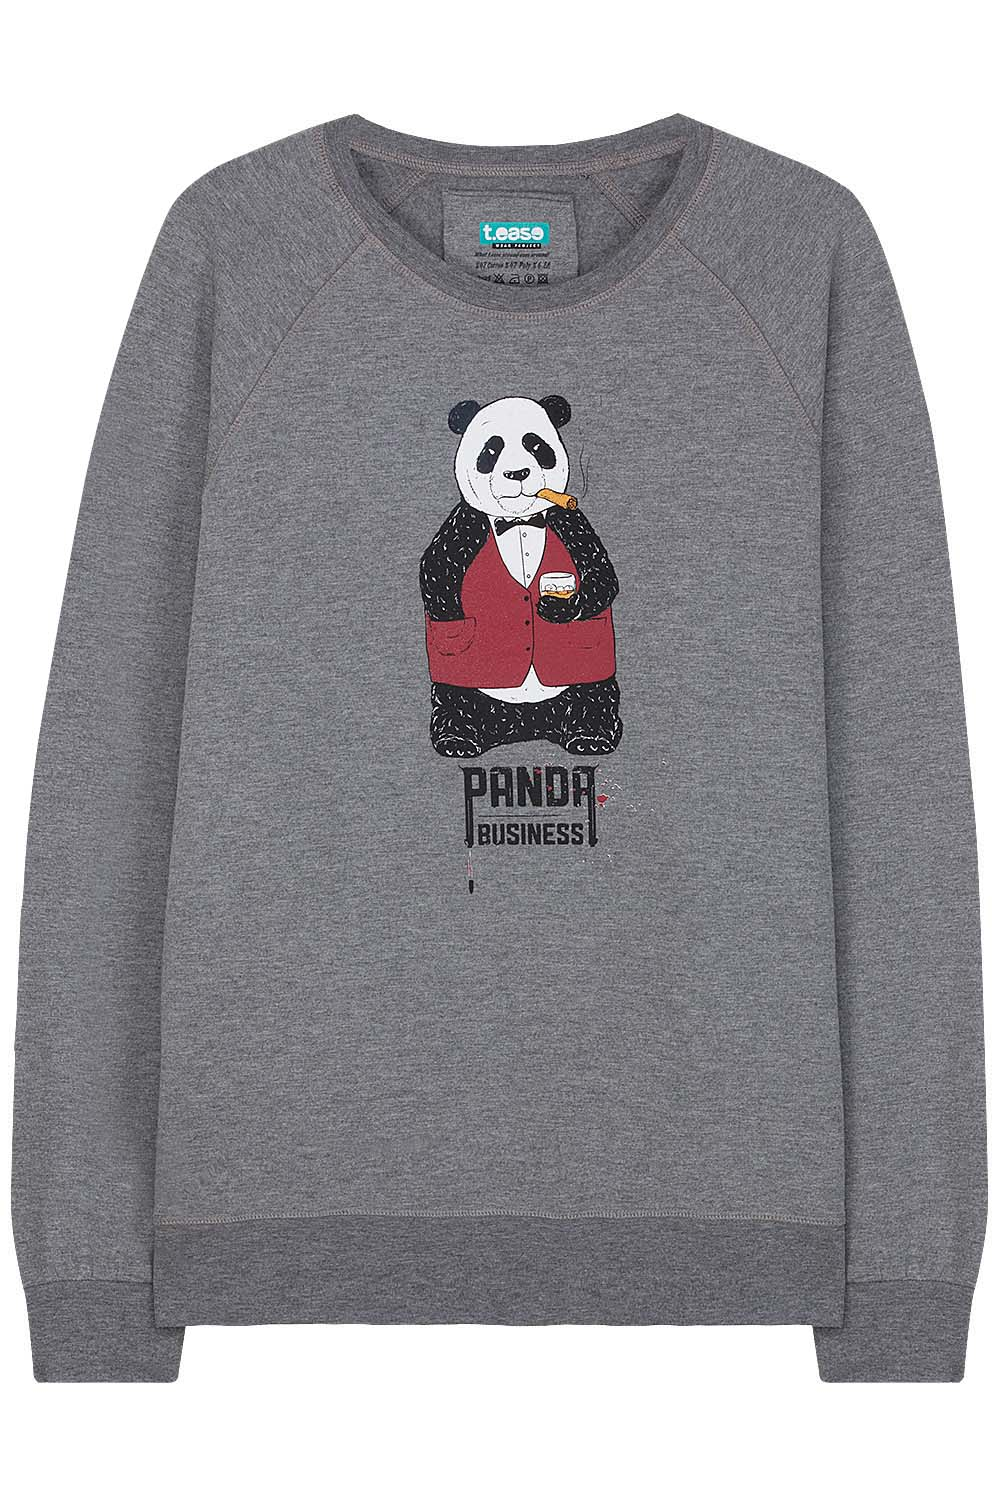 Panda Business Sweatshirt